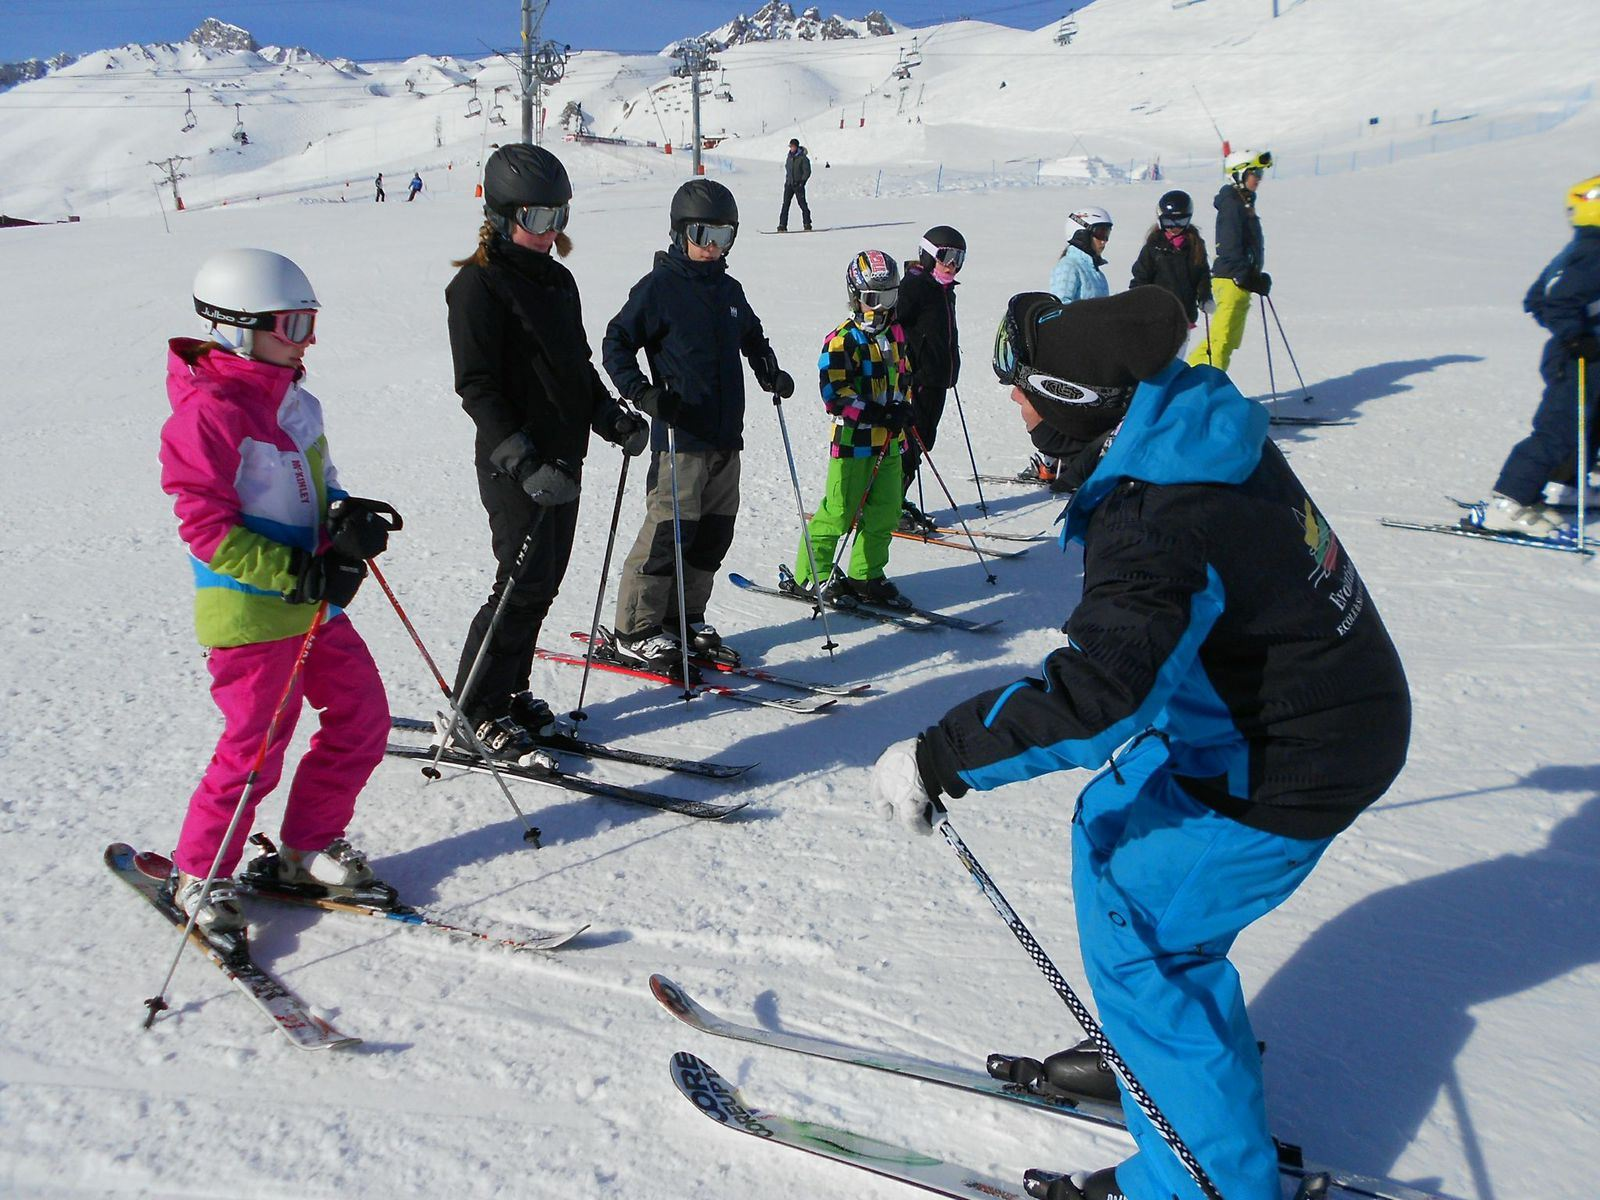 Morning ski lessons for kids and adults- Ski school Evolution 2